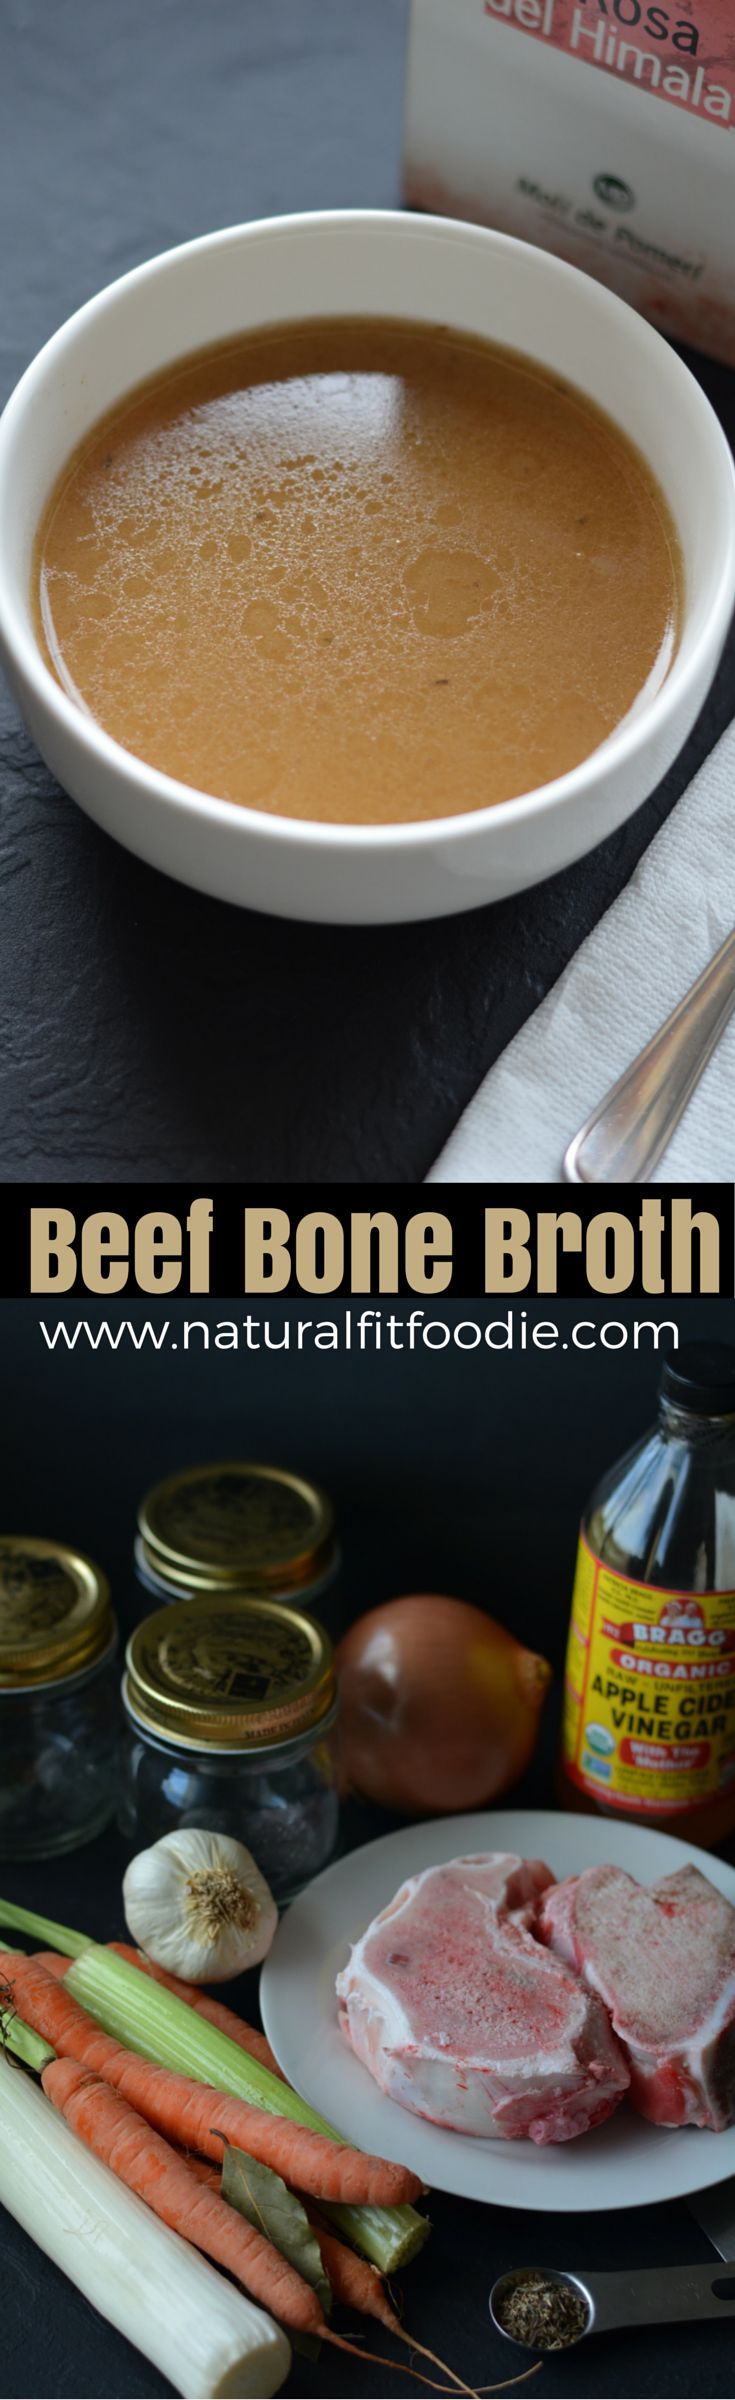 Healing Beef Bone Broth - www.naturalfitfoodie.com Bone broth is nutrient-dense, easy to digest and inexpensive to create at home so why not make your own?